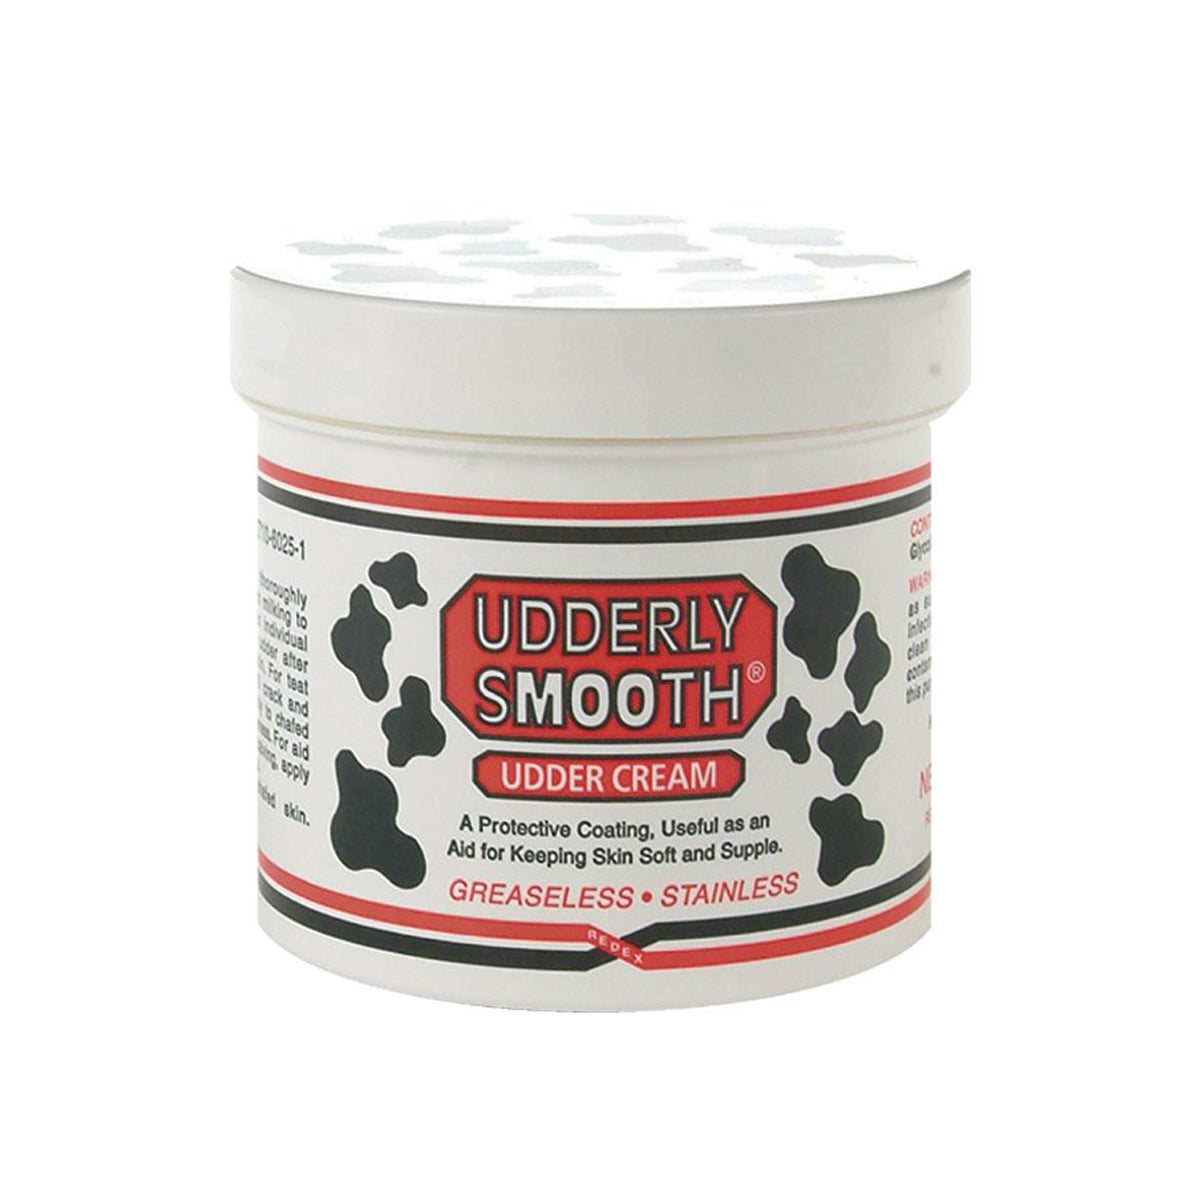 UDDERLY SMOOTH BODY CREAM